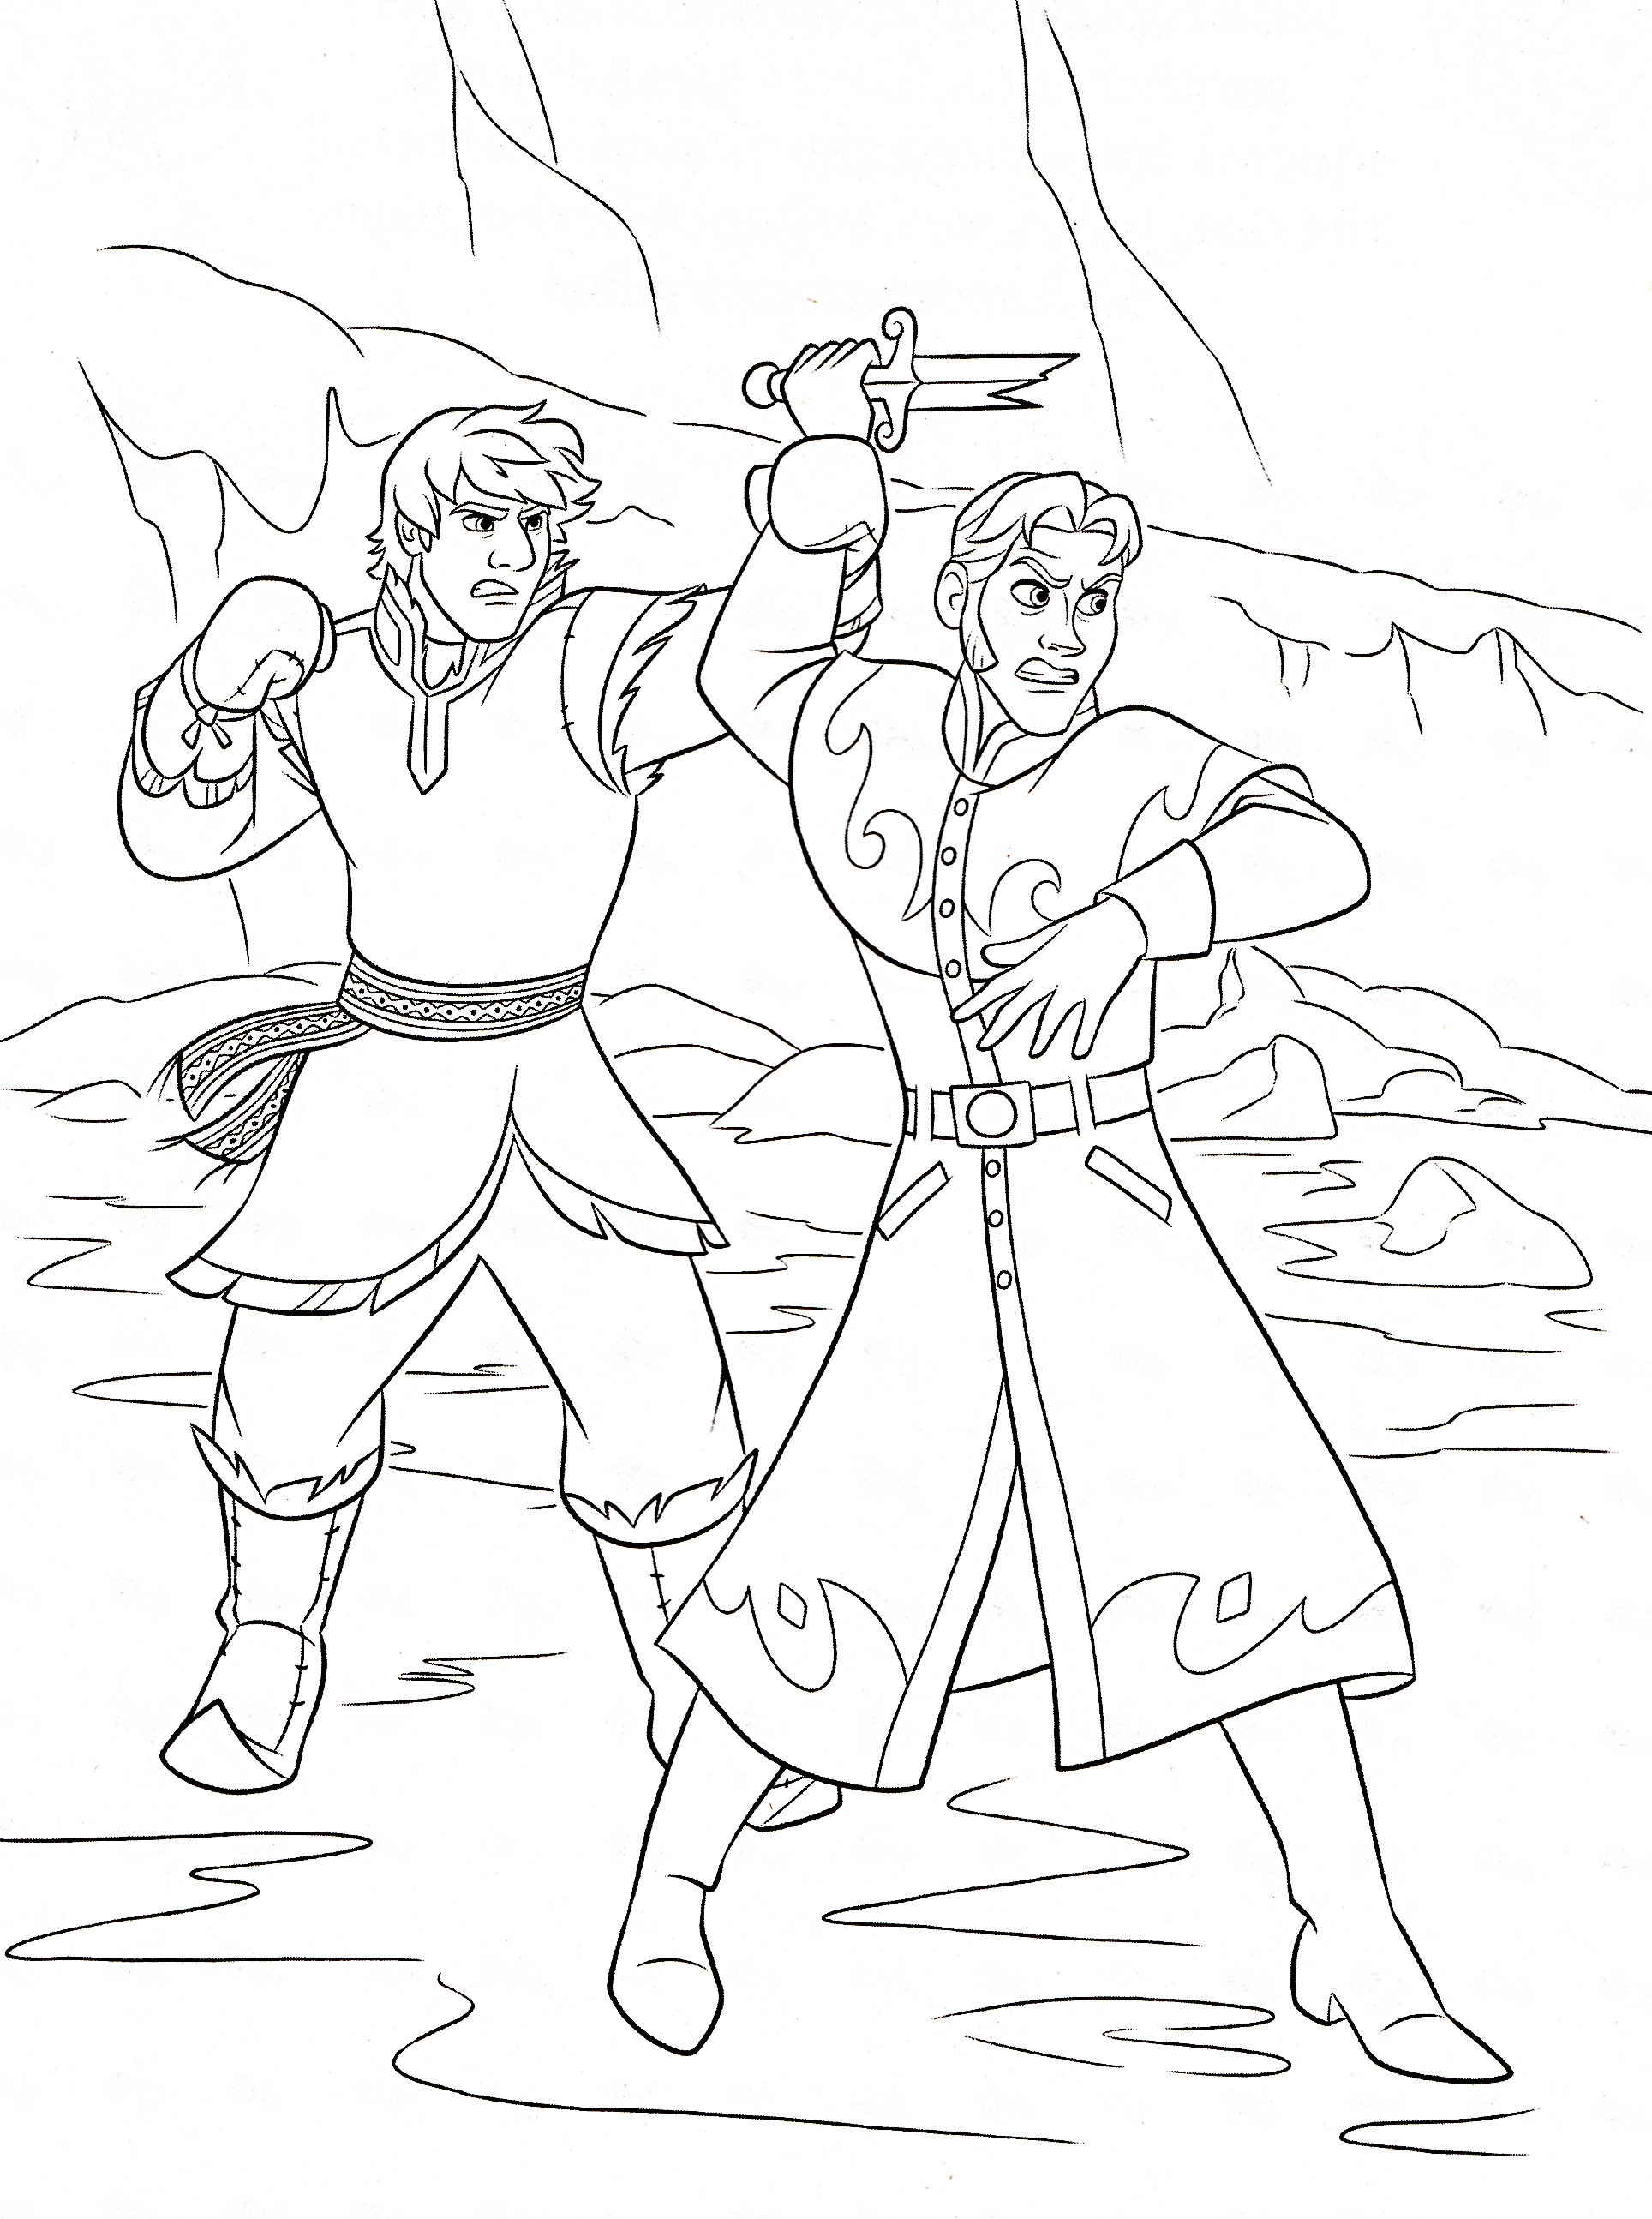 Free Frozen Coloring Pages Kristoff : Walt disney coloring pages kristoff bjorgman prince